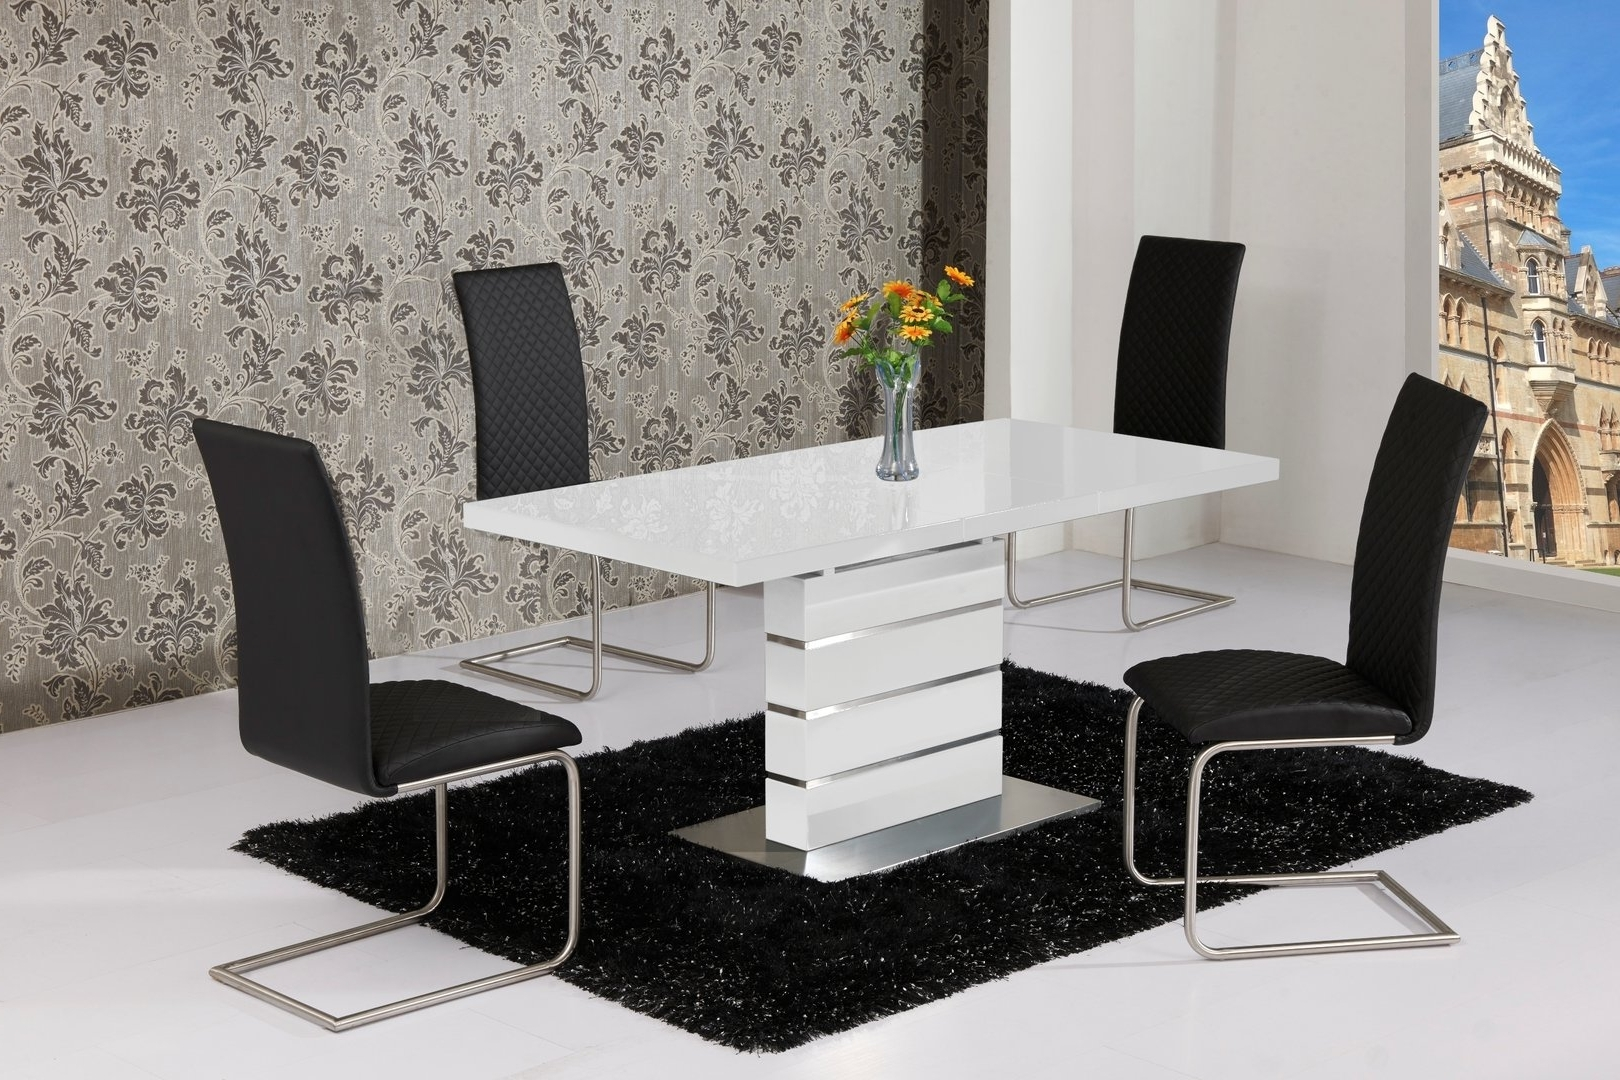 Black High Gloss Dining Tables And Chairs Intended For Latest Extending White High Gloss Dining Table And 4 Black Chairs Set (View 21 of 25)